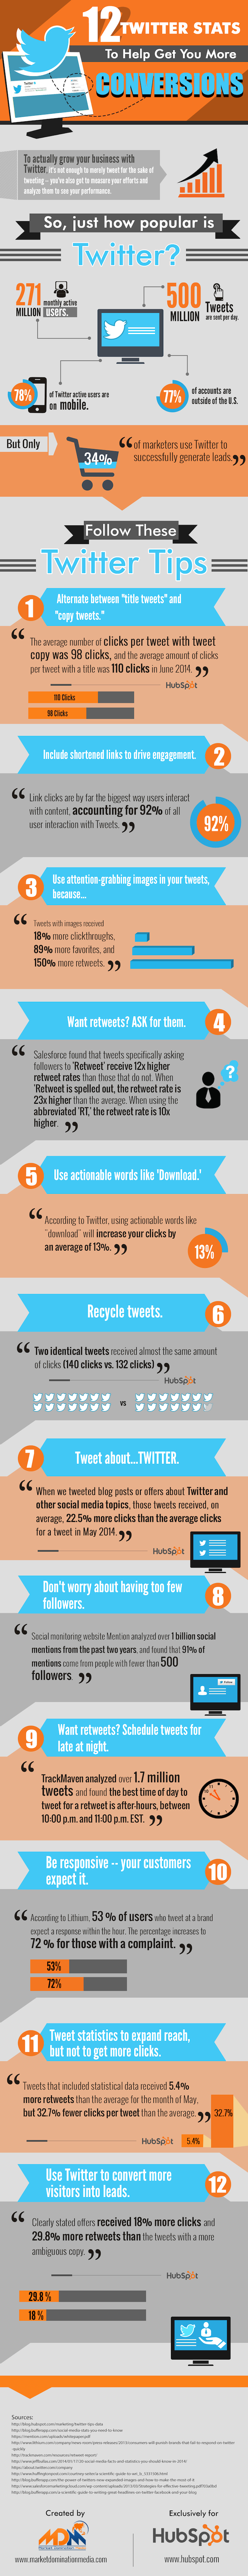 12-twitter-stats-to-help-get-you-more-conversions